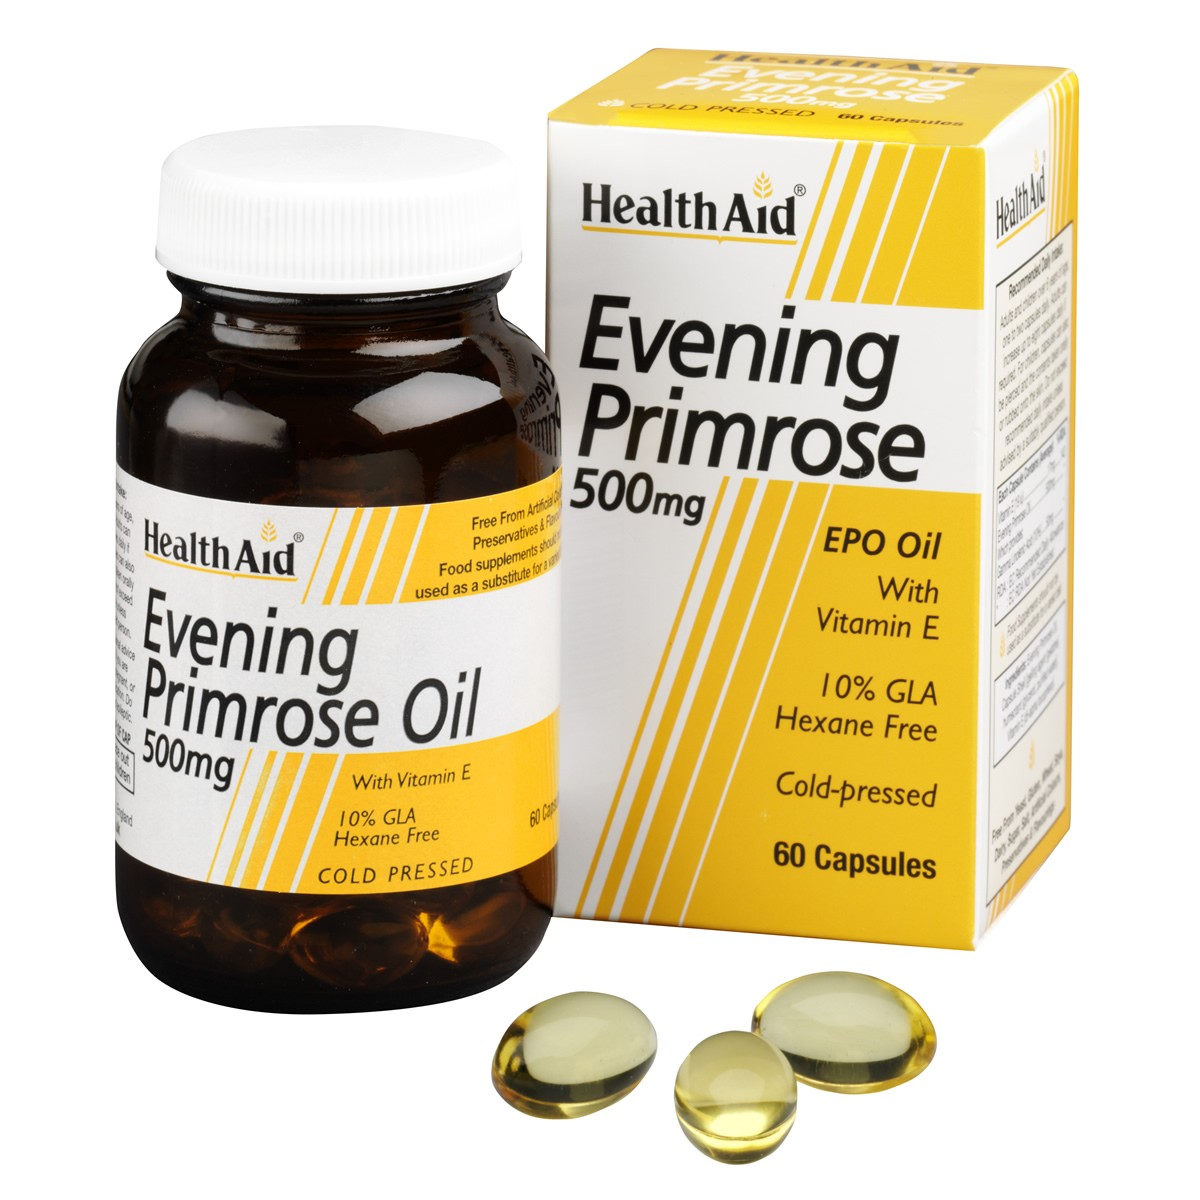 HealthAid Evening Primrose Oil 500mg + Vitamin E Capsules